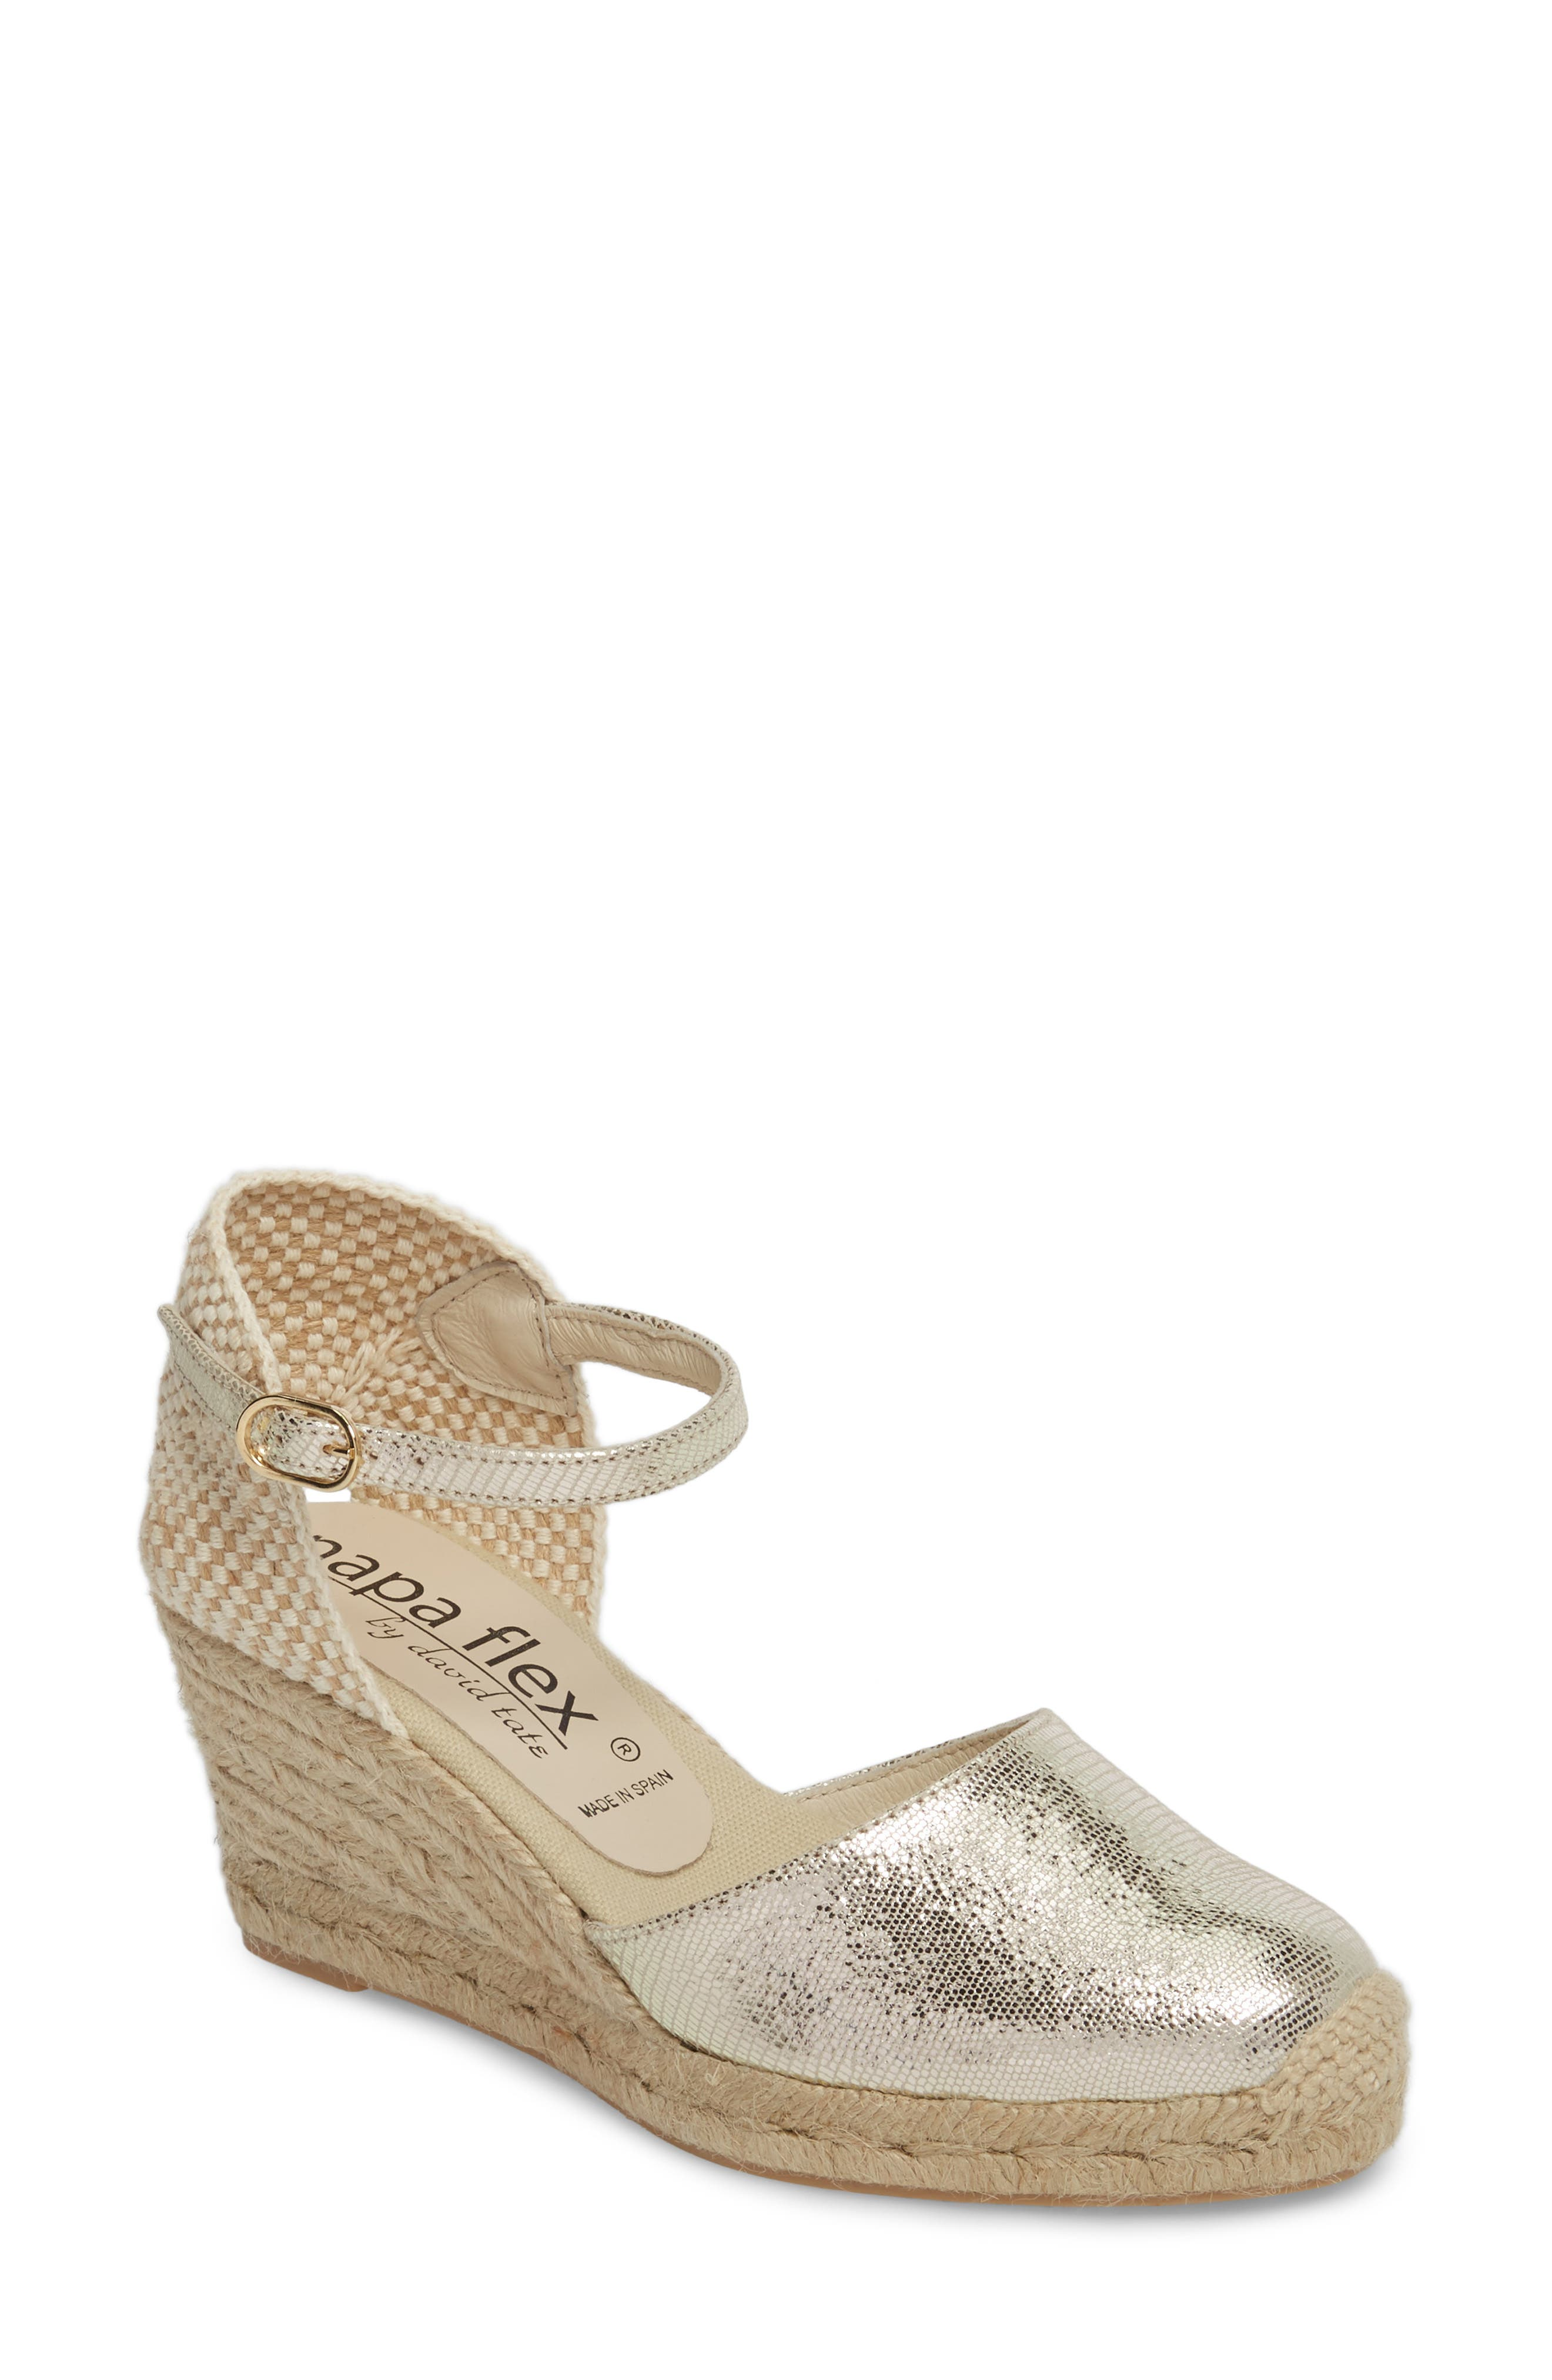 Europa Wedge Sandal,                         Main,                         color, Gold Lizard Printed Leather